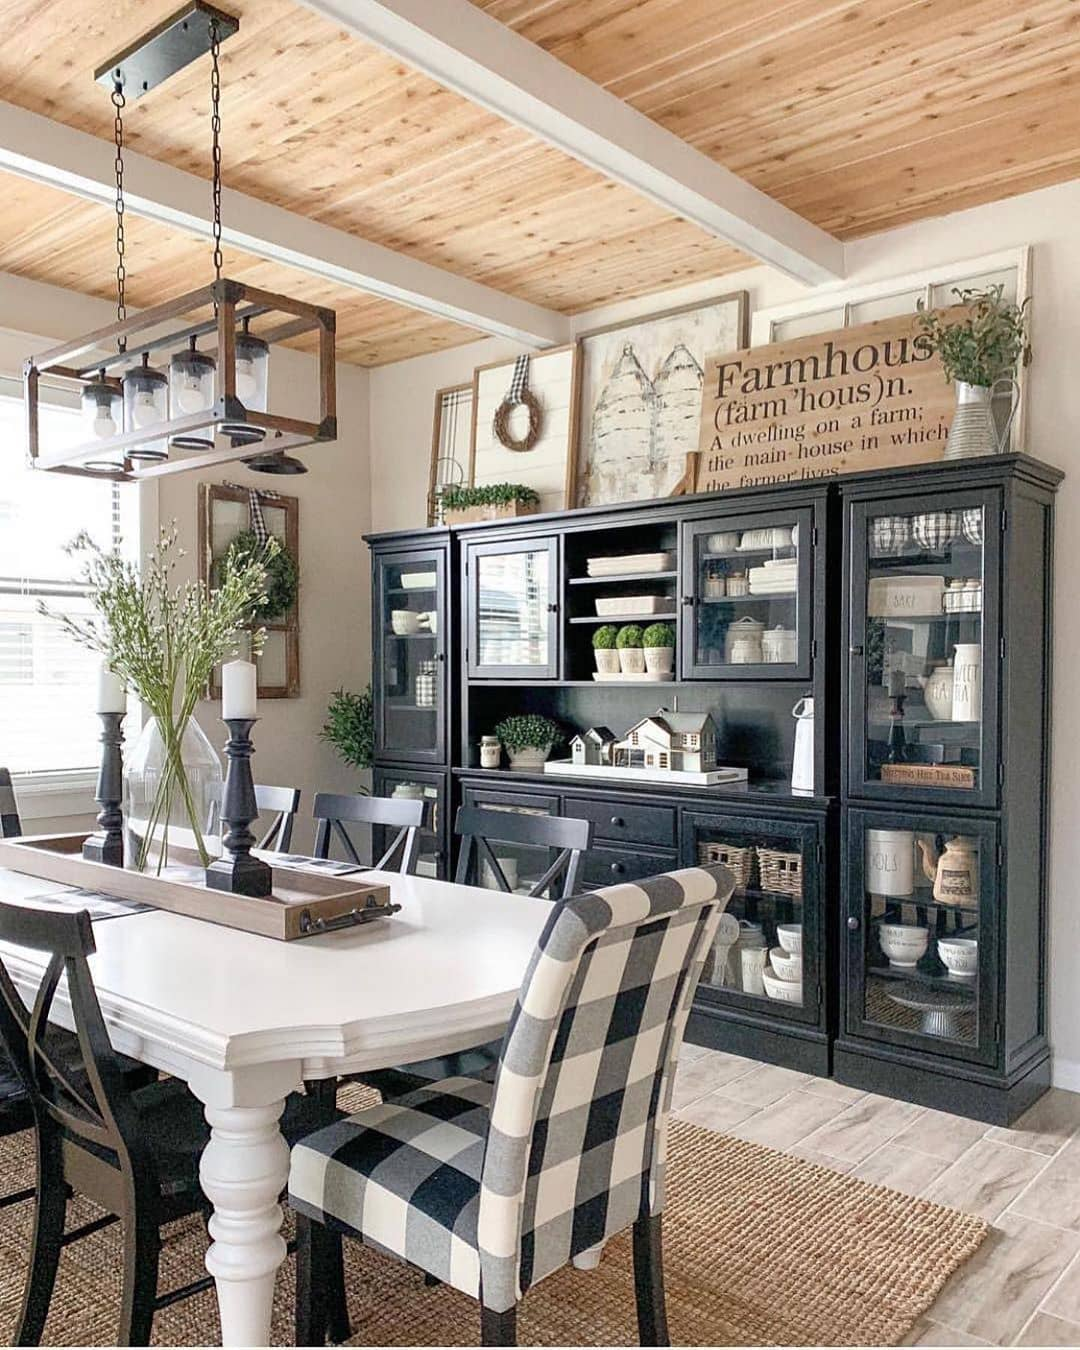 20 Modern Farmhouse Decor Ideas In 2020